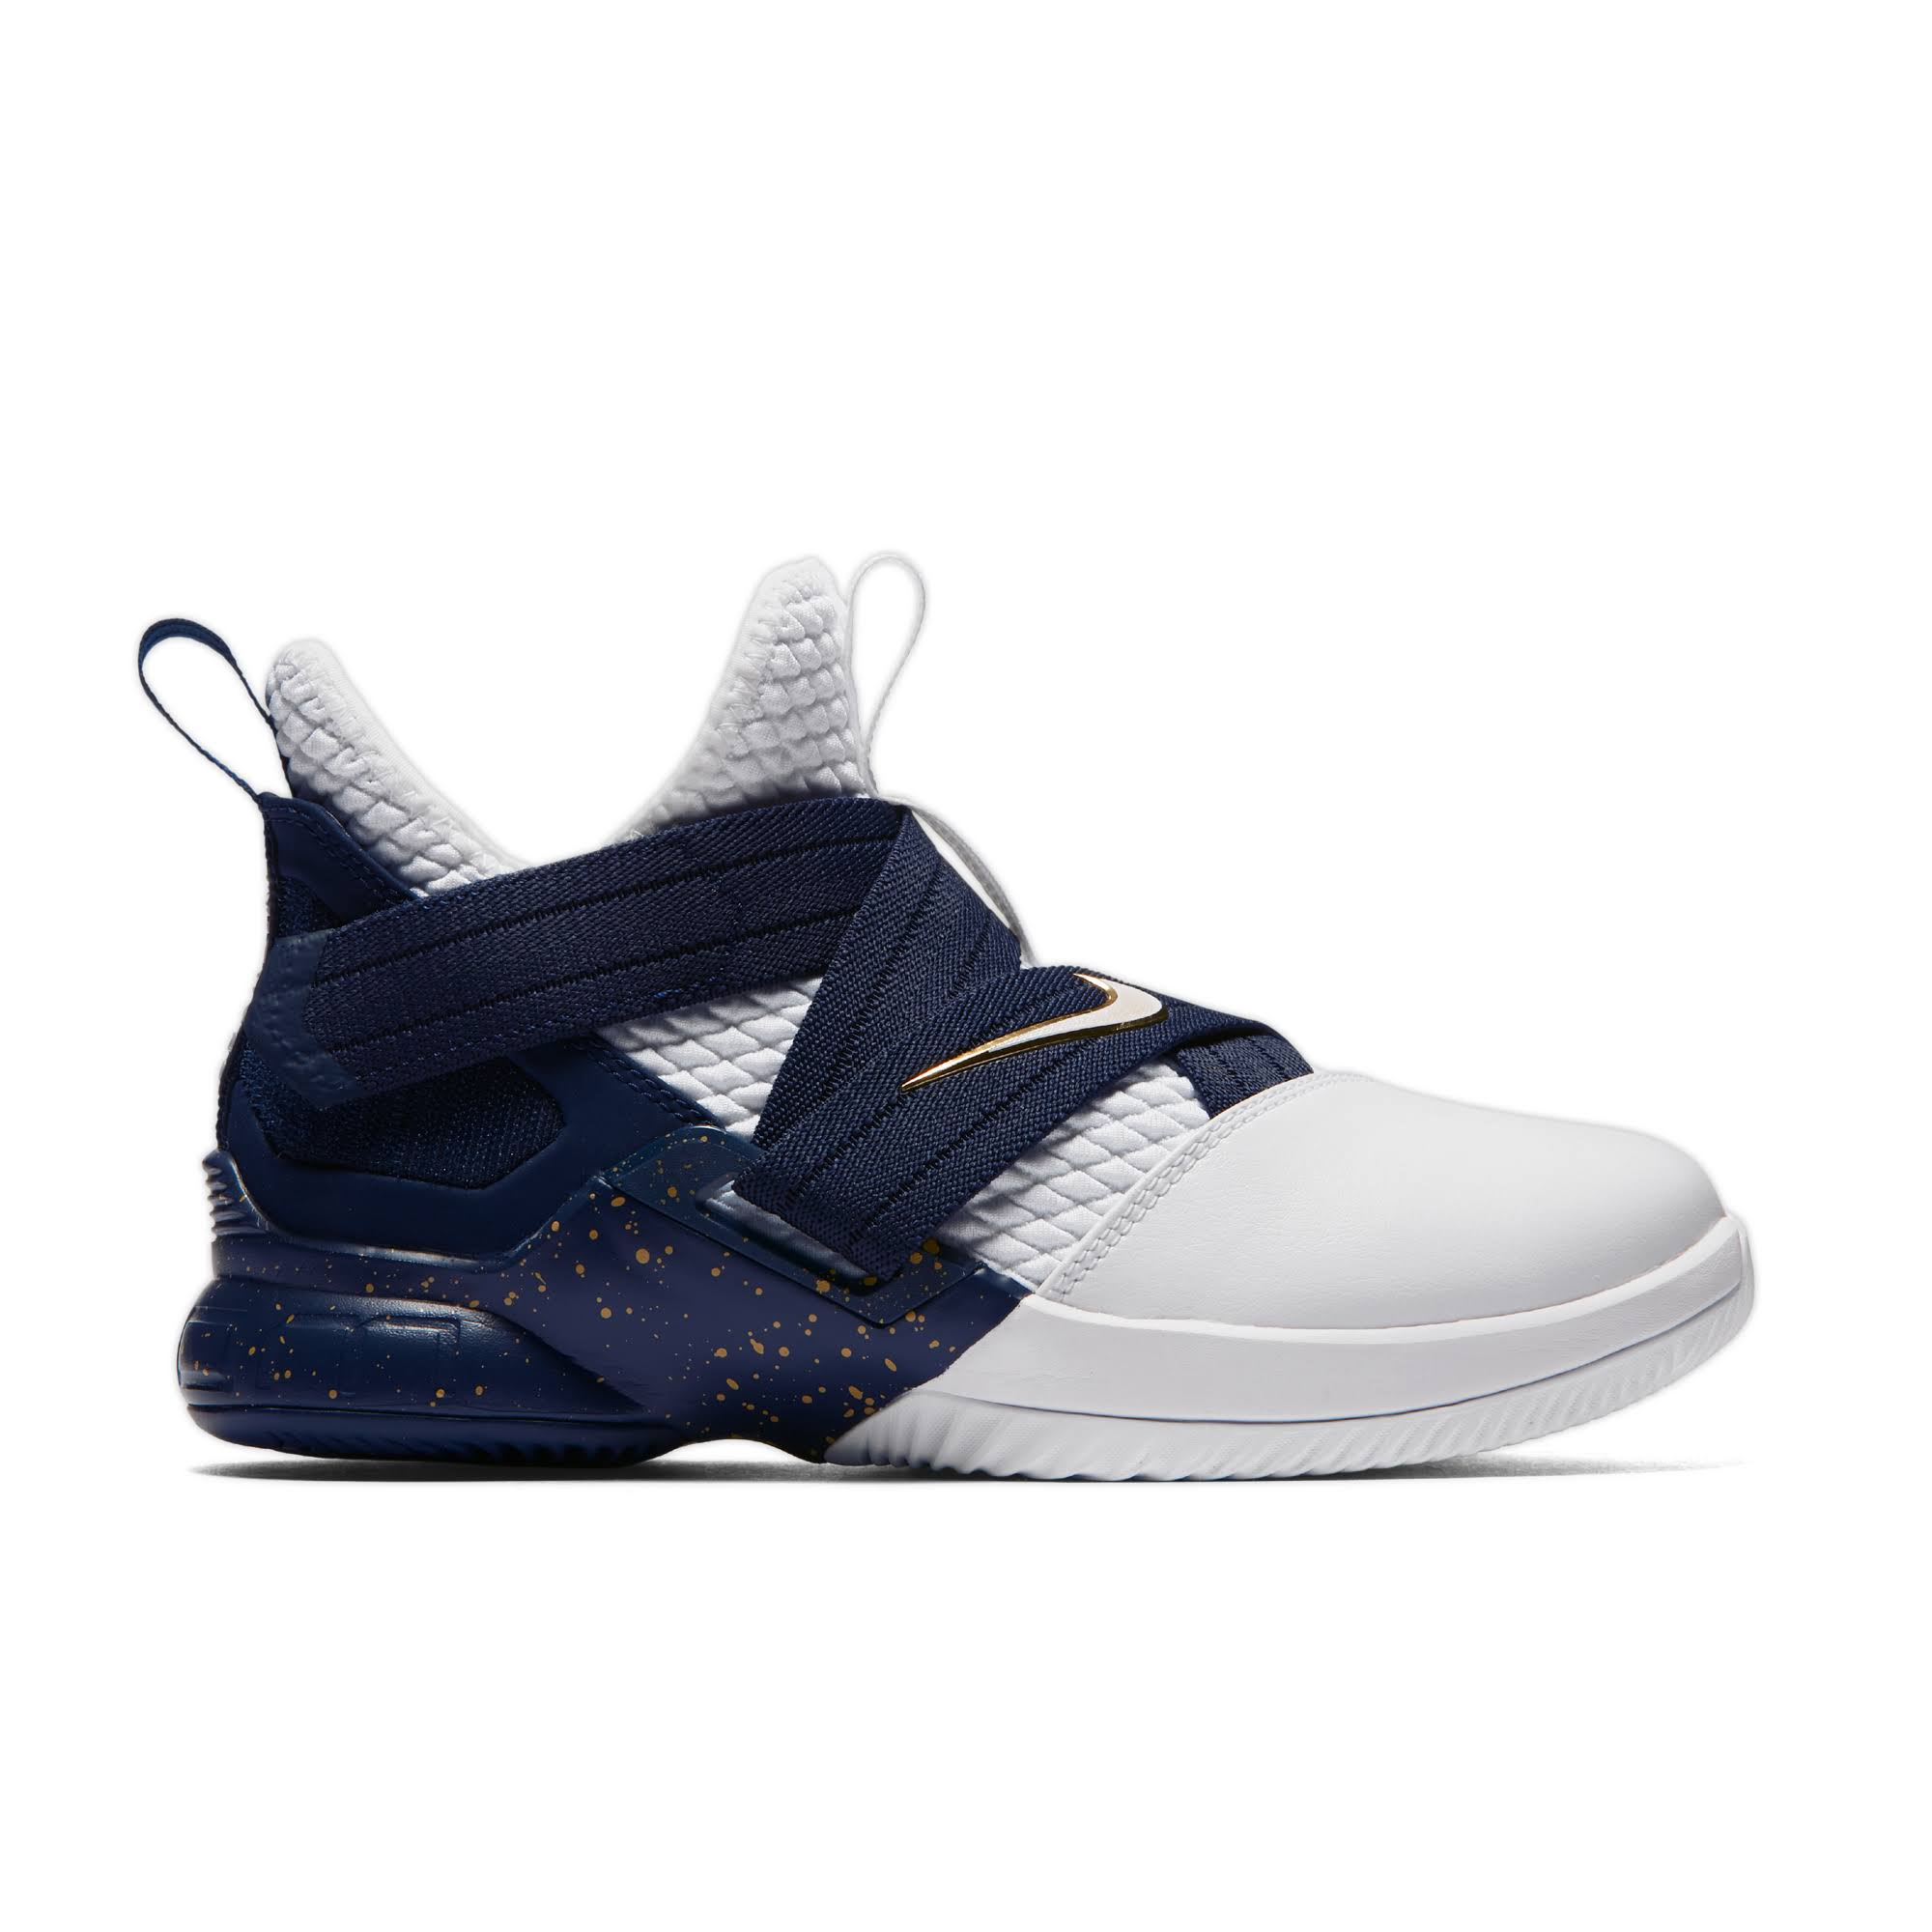 Sfg Lebron Nike 12 White Midnight Navy Gs Soldier ax8qz